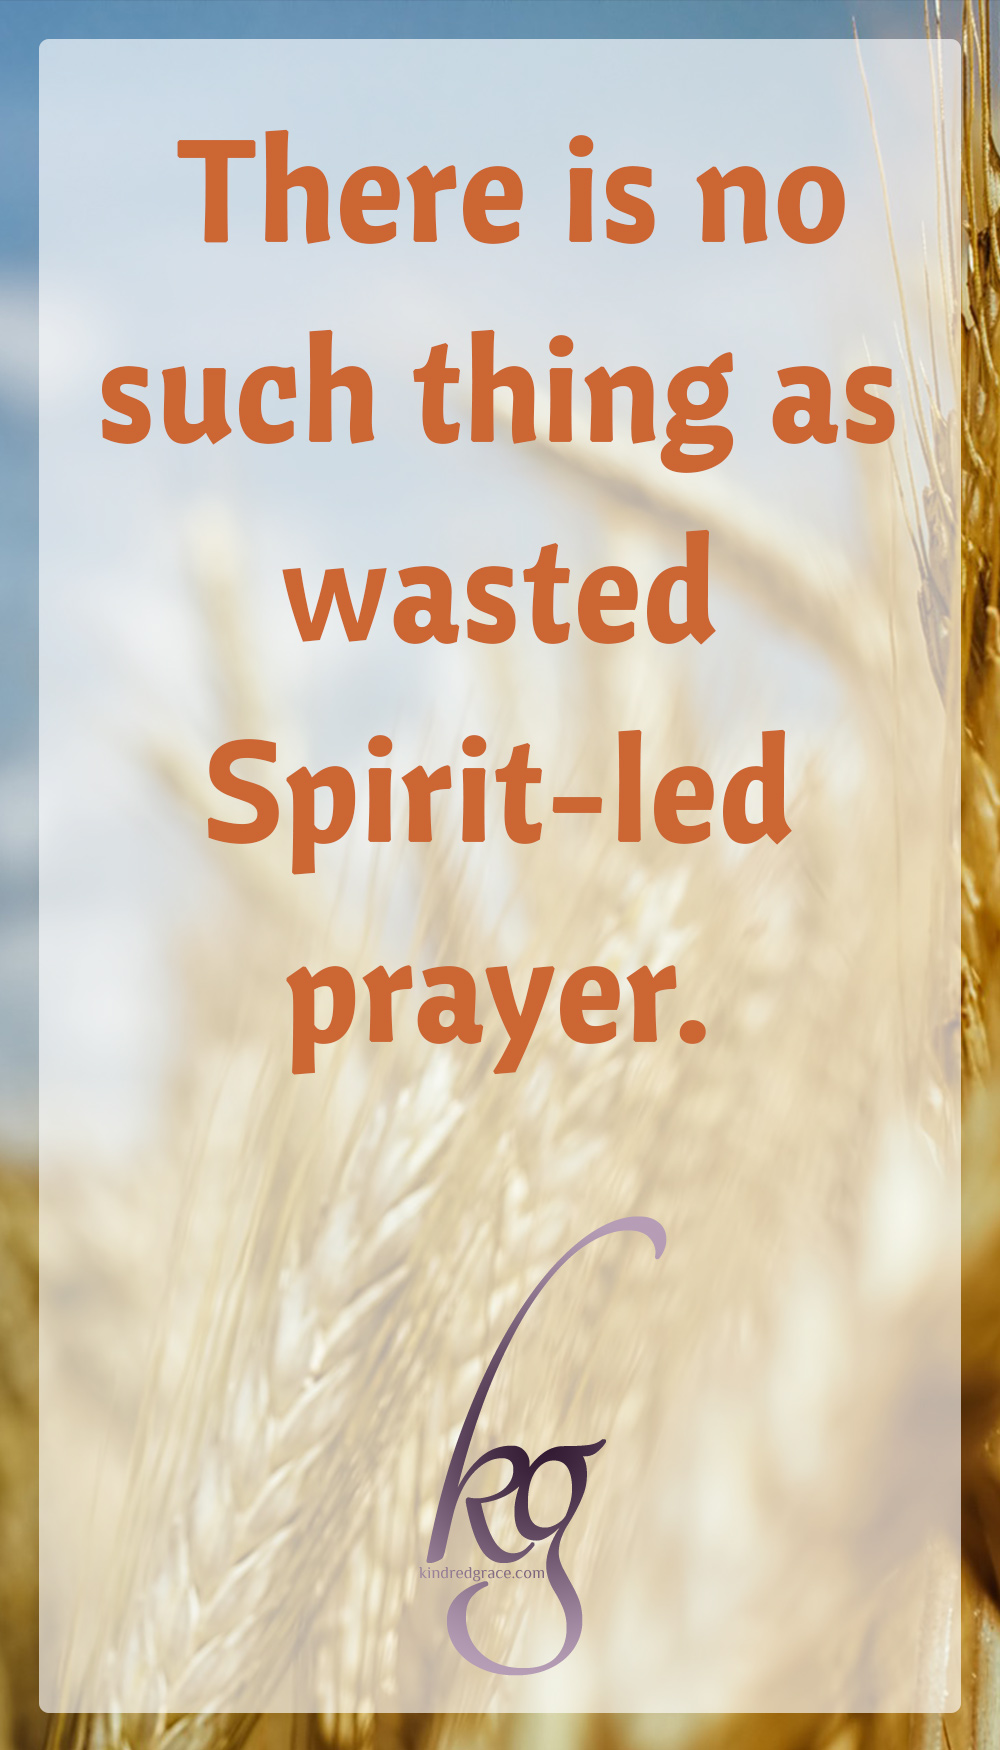 The Sowing and Reaping of Prayer via @KindredGrace